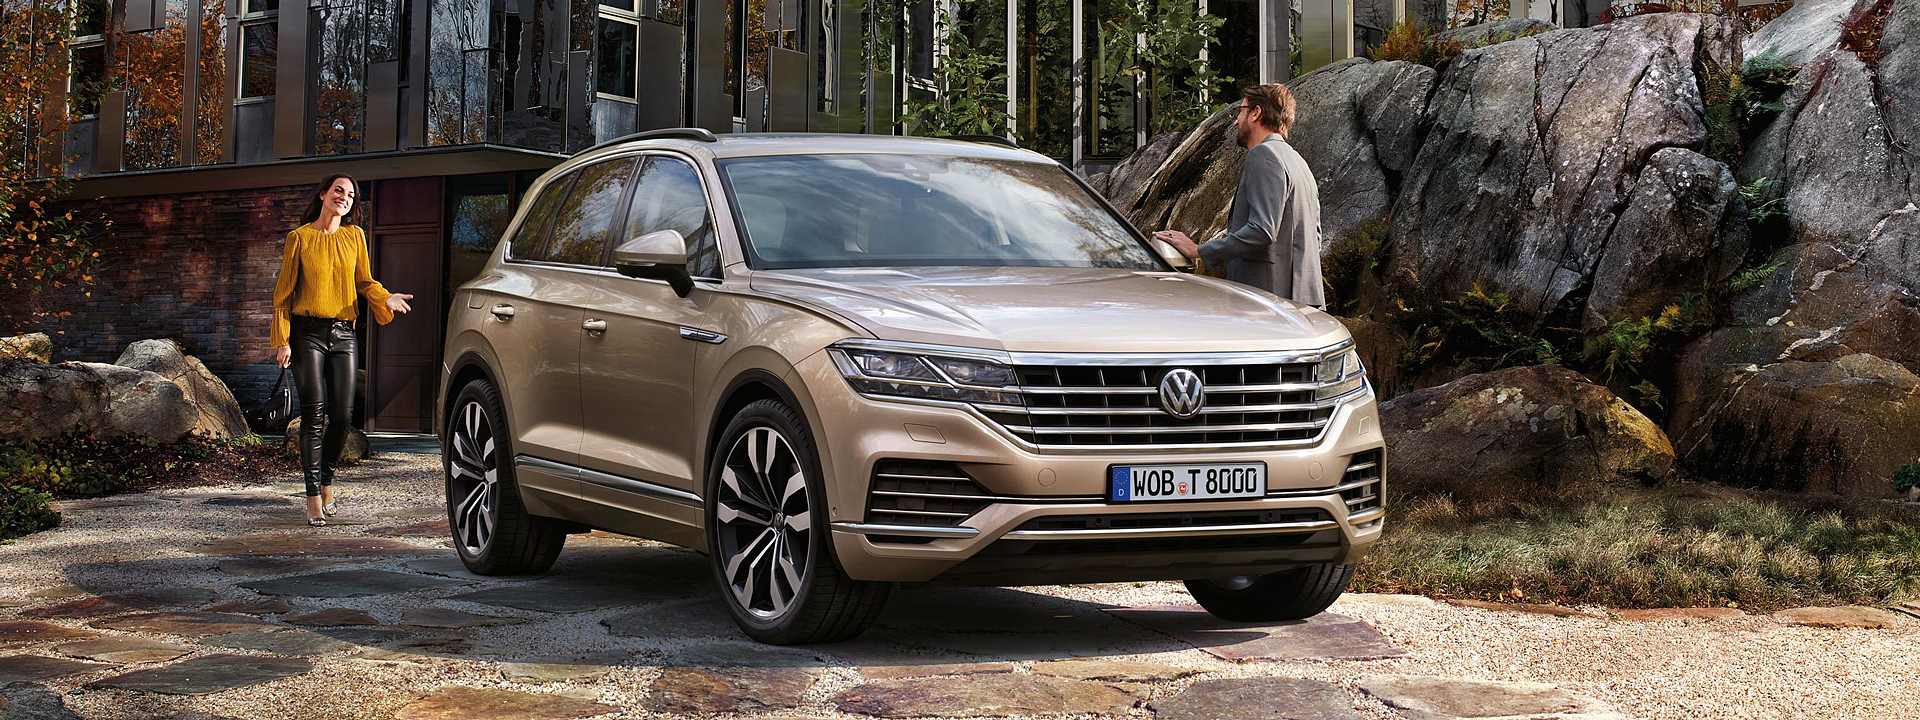 vw touareg atmosphere leasing angebote ohne anzahlung ab 644. Black Bedroom Furniture Sets. Home Design Ideas